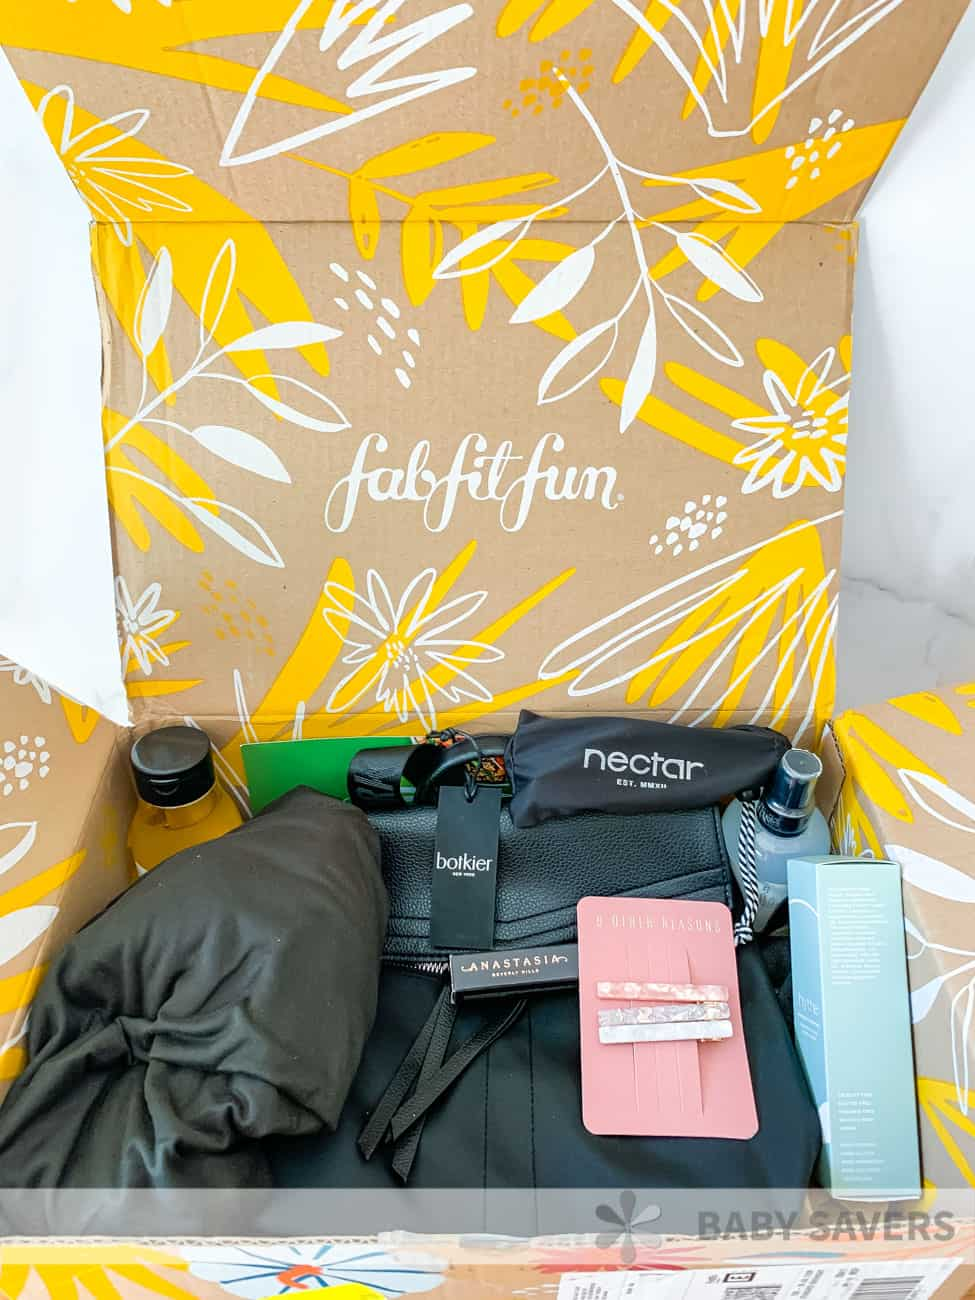 Full Fabfitfun box with all the fall 2020 products like a purse, laundry spray, shower gel and more